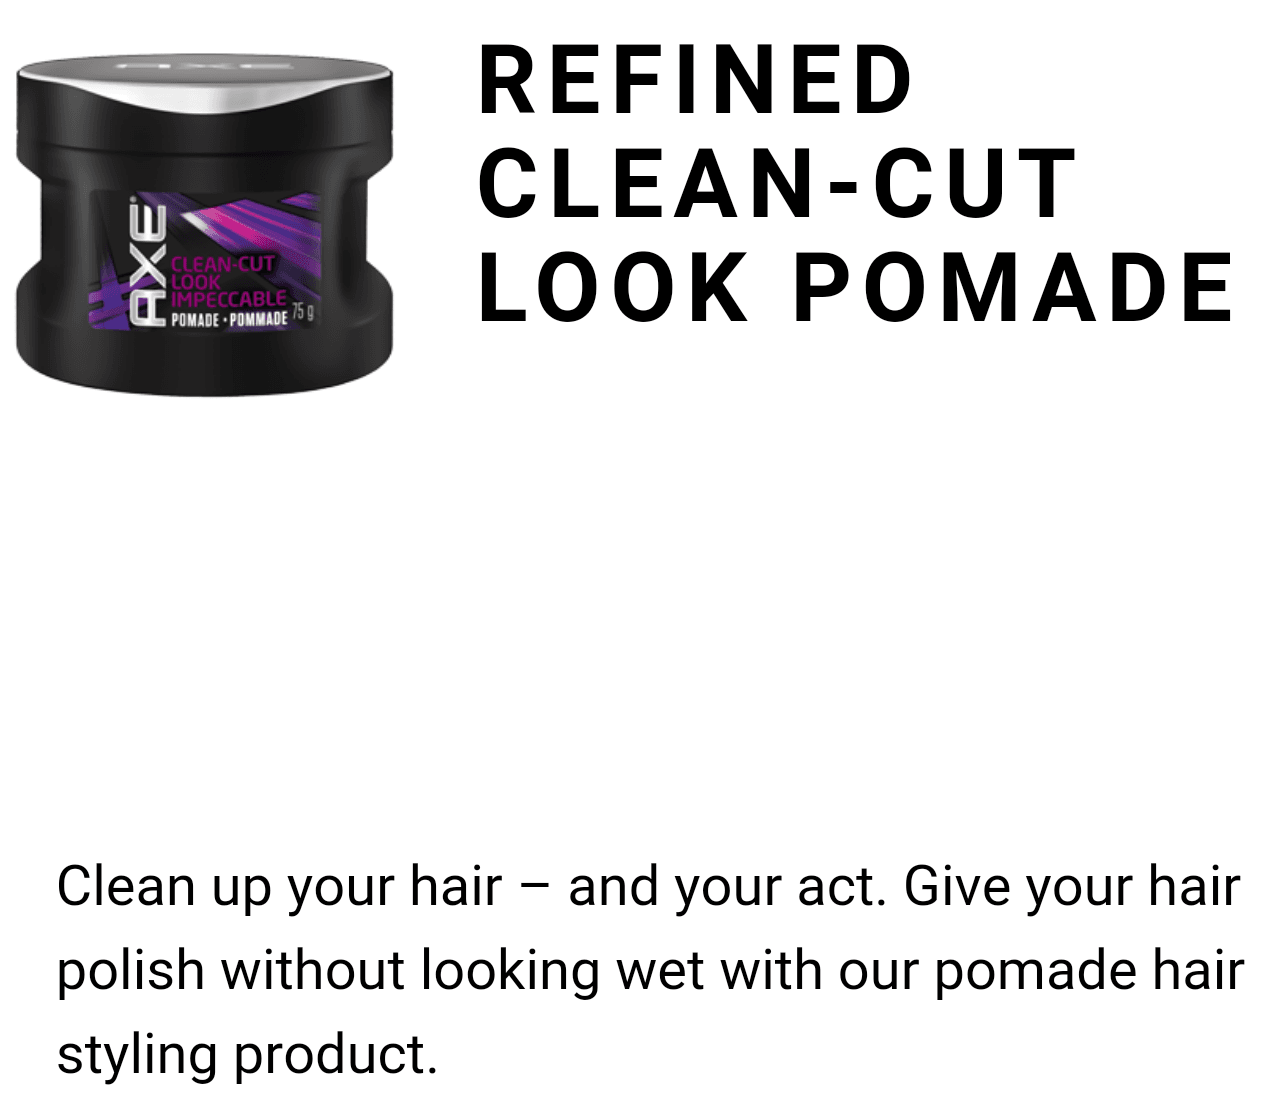 AXEGOTSTYLE-Refined-Clean-Cut-Look-Pomade